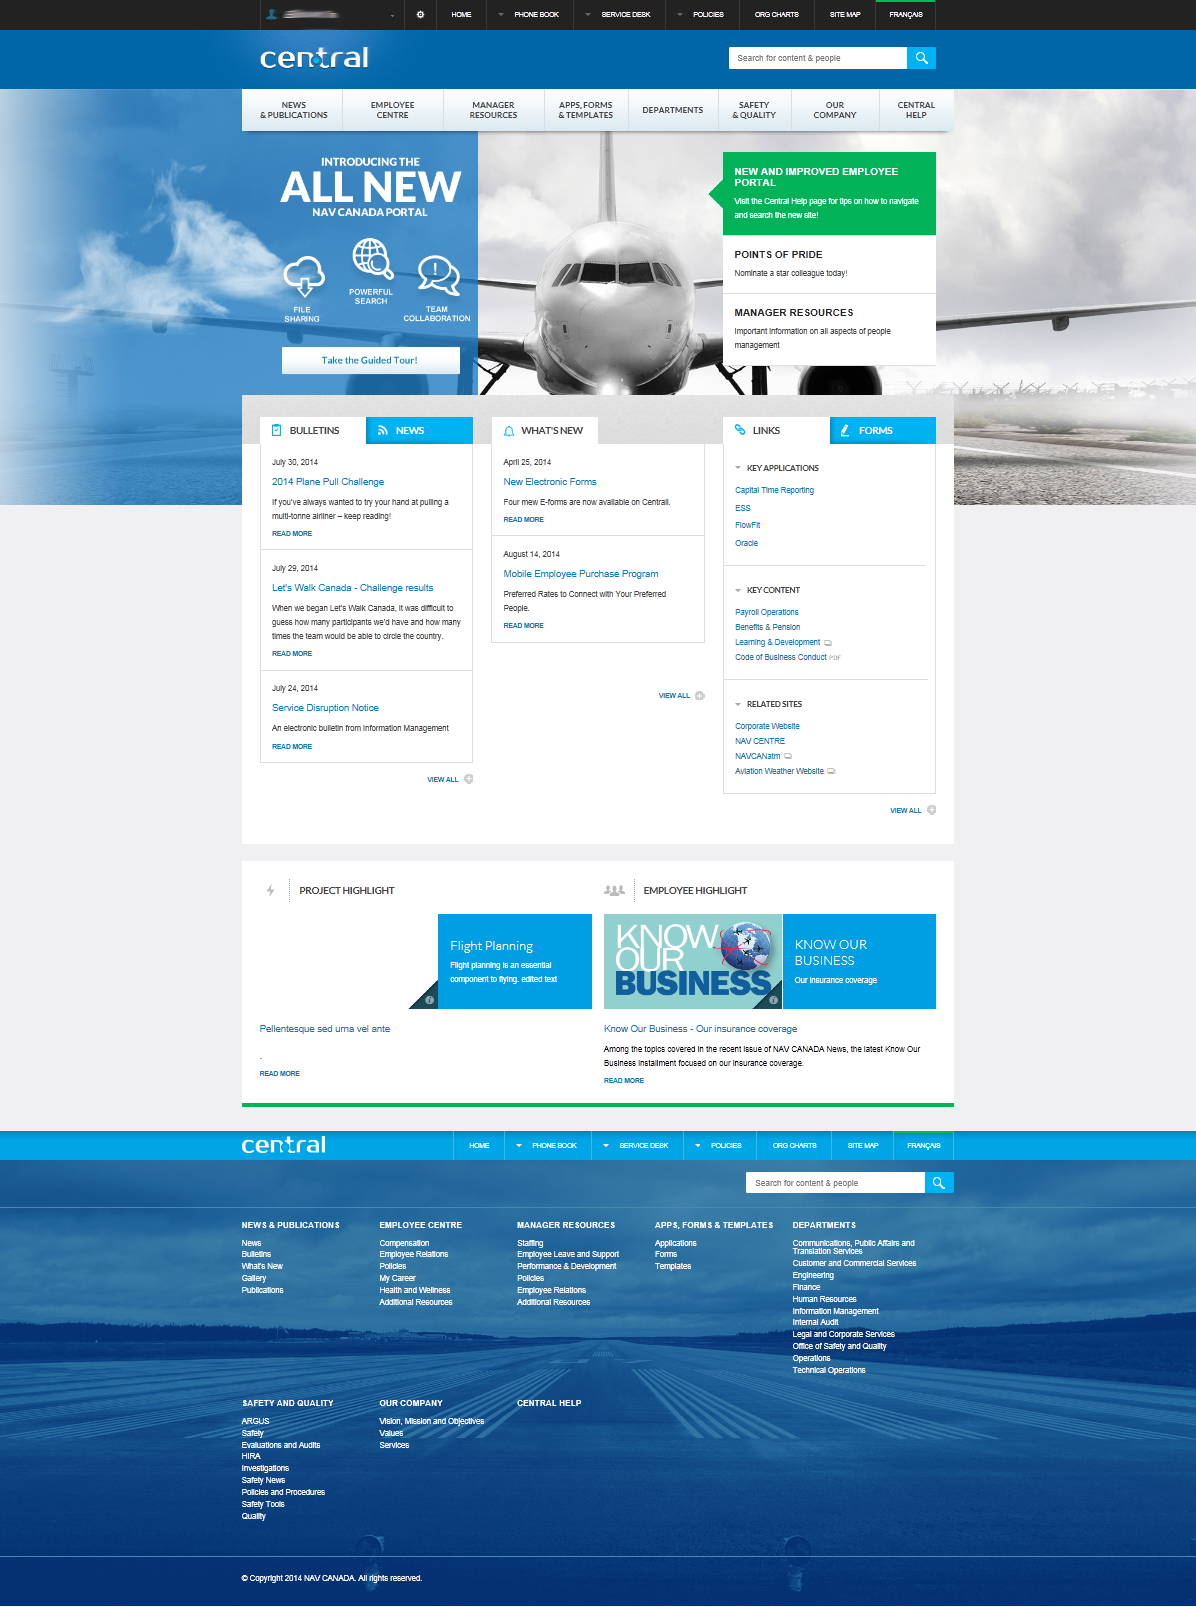 Sharepoint site design ideas - Nav Canada S Delightful Intranet Is Based On Sharepoint 2013 Above Is The Homepage The